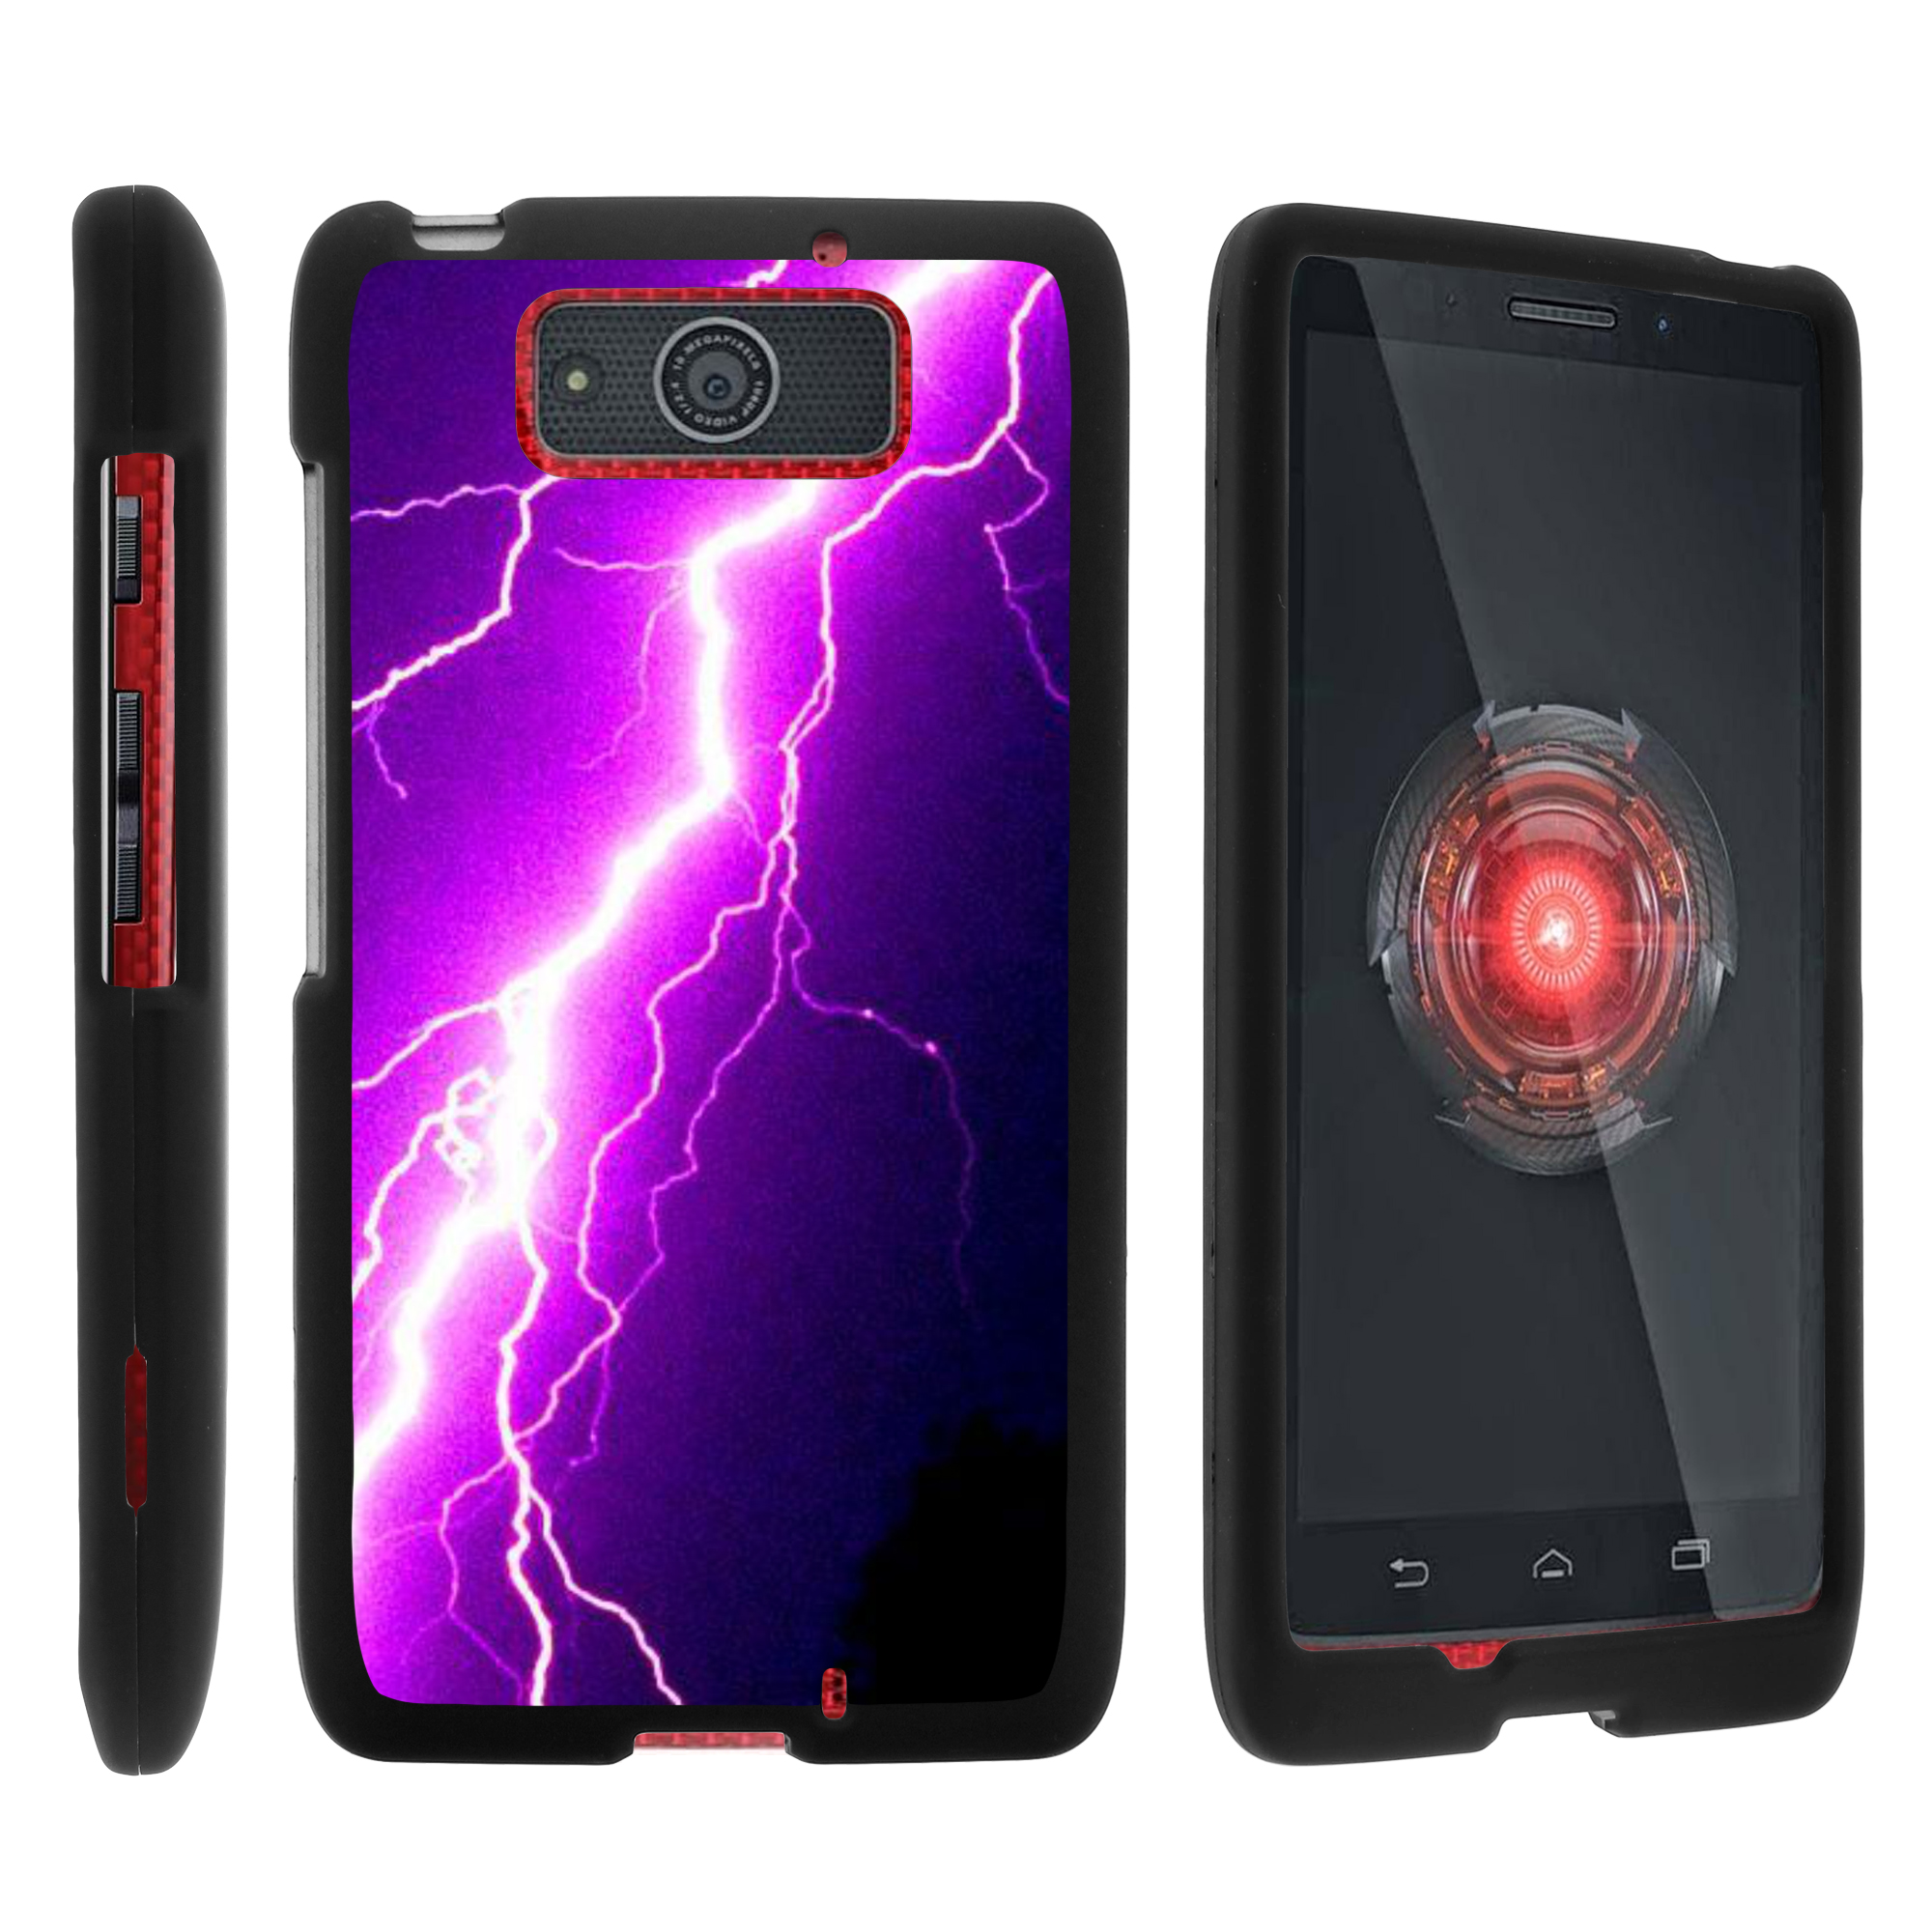 Motorola Droid Ultra XT1080 | Droid Maxx XT1080-M, [SNAP SHELL][Matte Black] 2 Piece Snap On Rubberized Hard Plastic Cell Phone Case with Exclusive Art - Purple Lightning Bolt